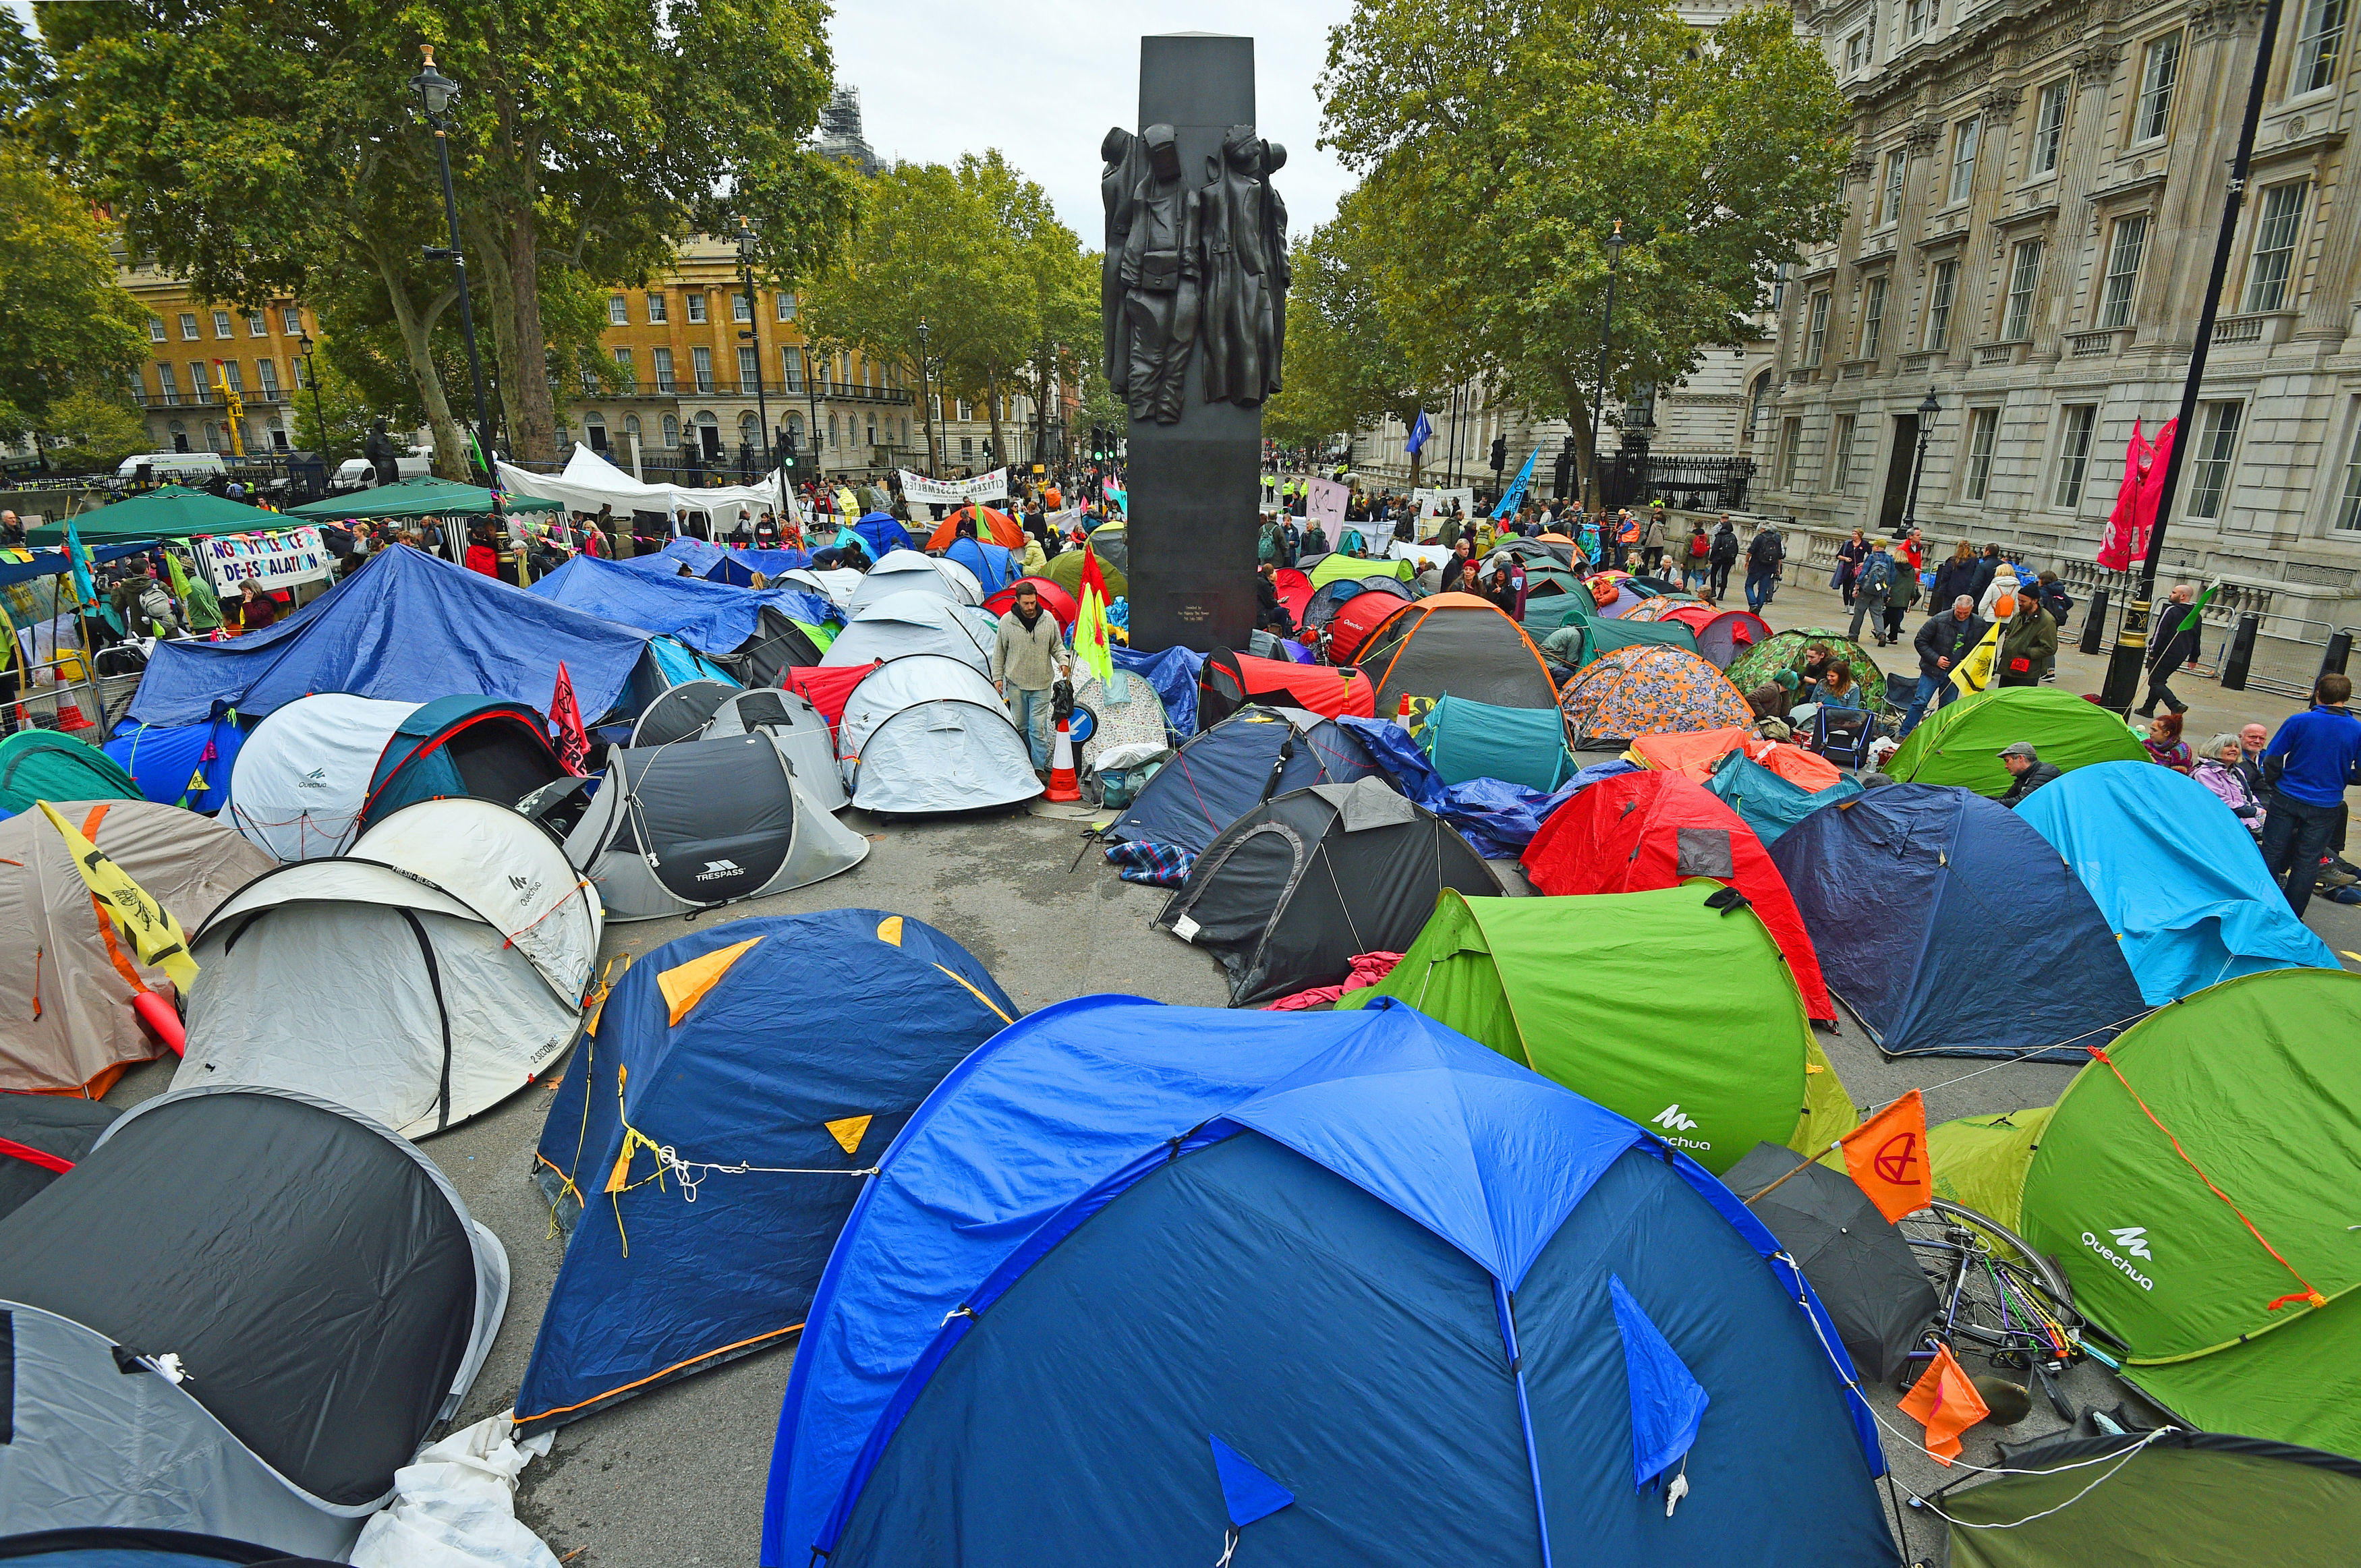 Extinction Rebellion (XR) protesters camp in tents around the Monument to the Women of World War II on Whitehall in Westminster, central London.